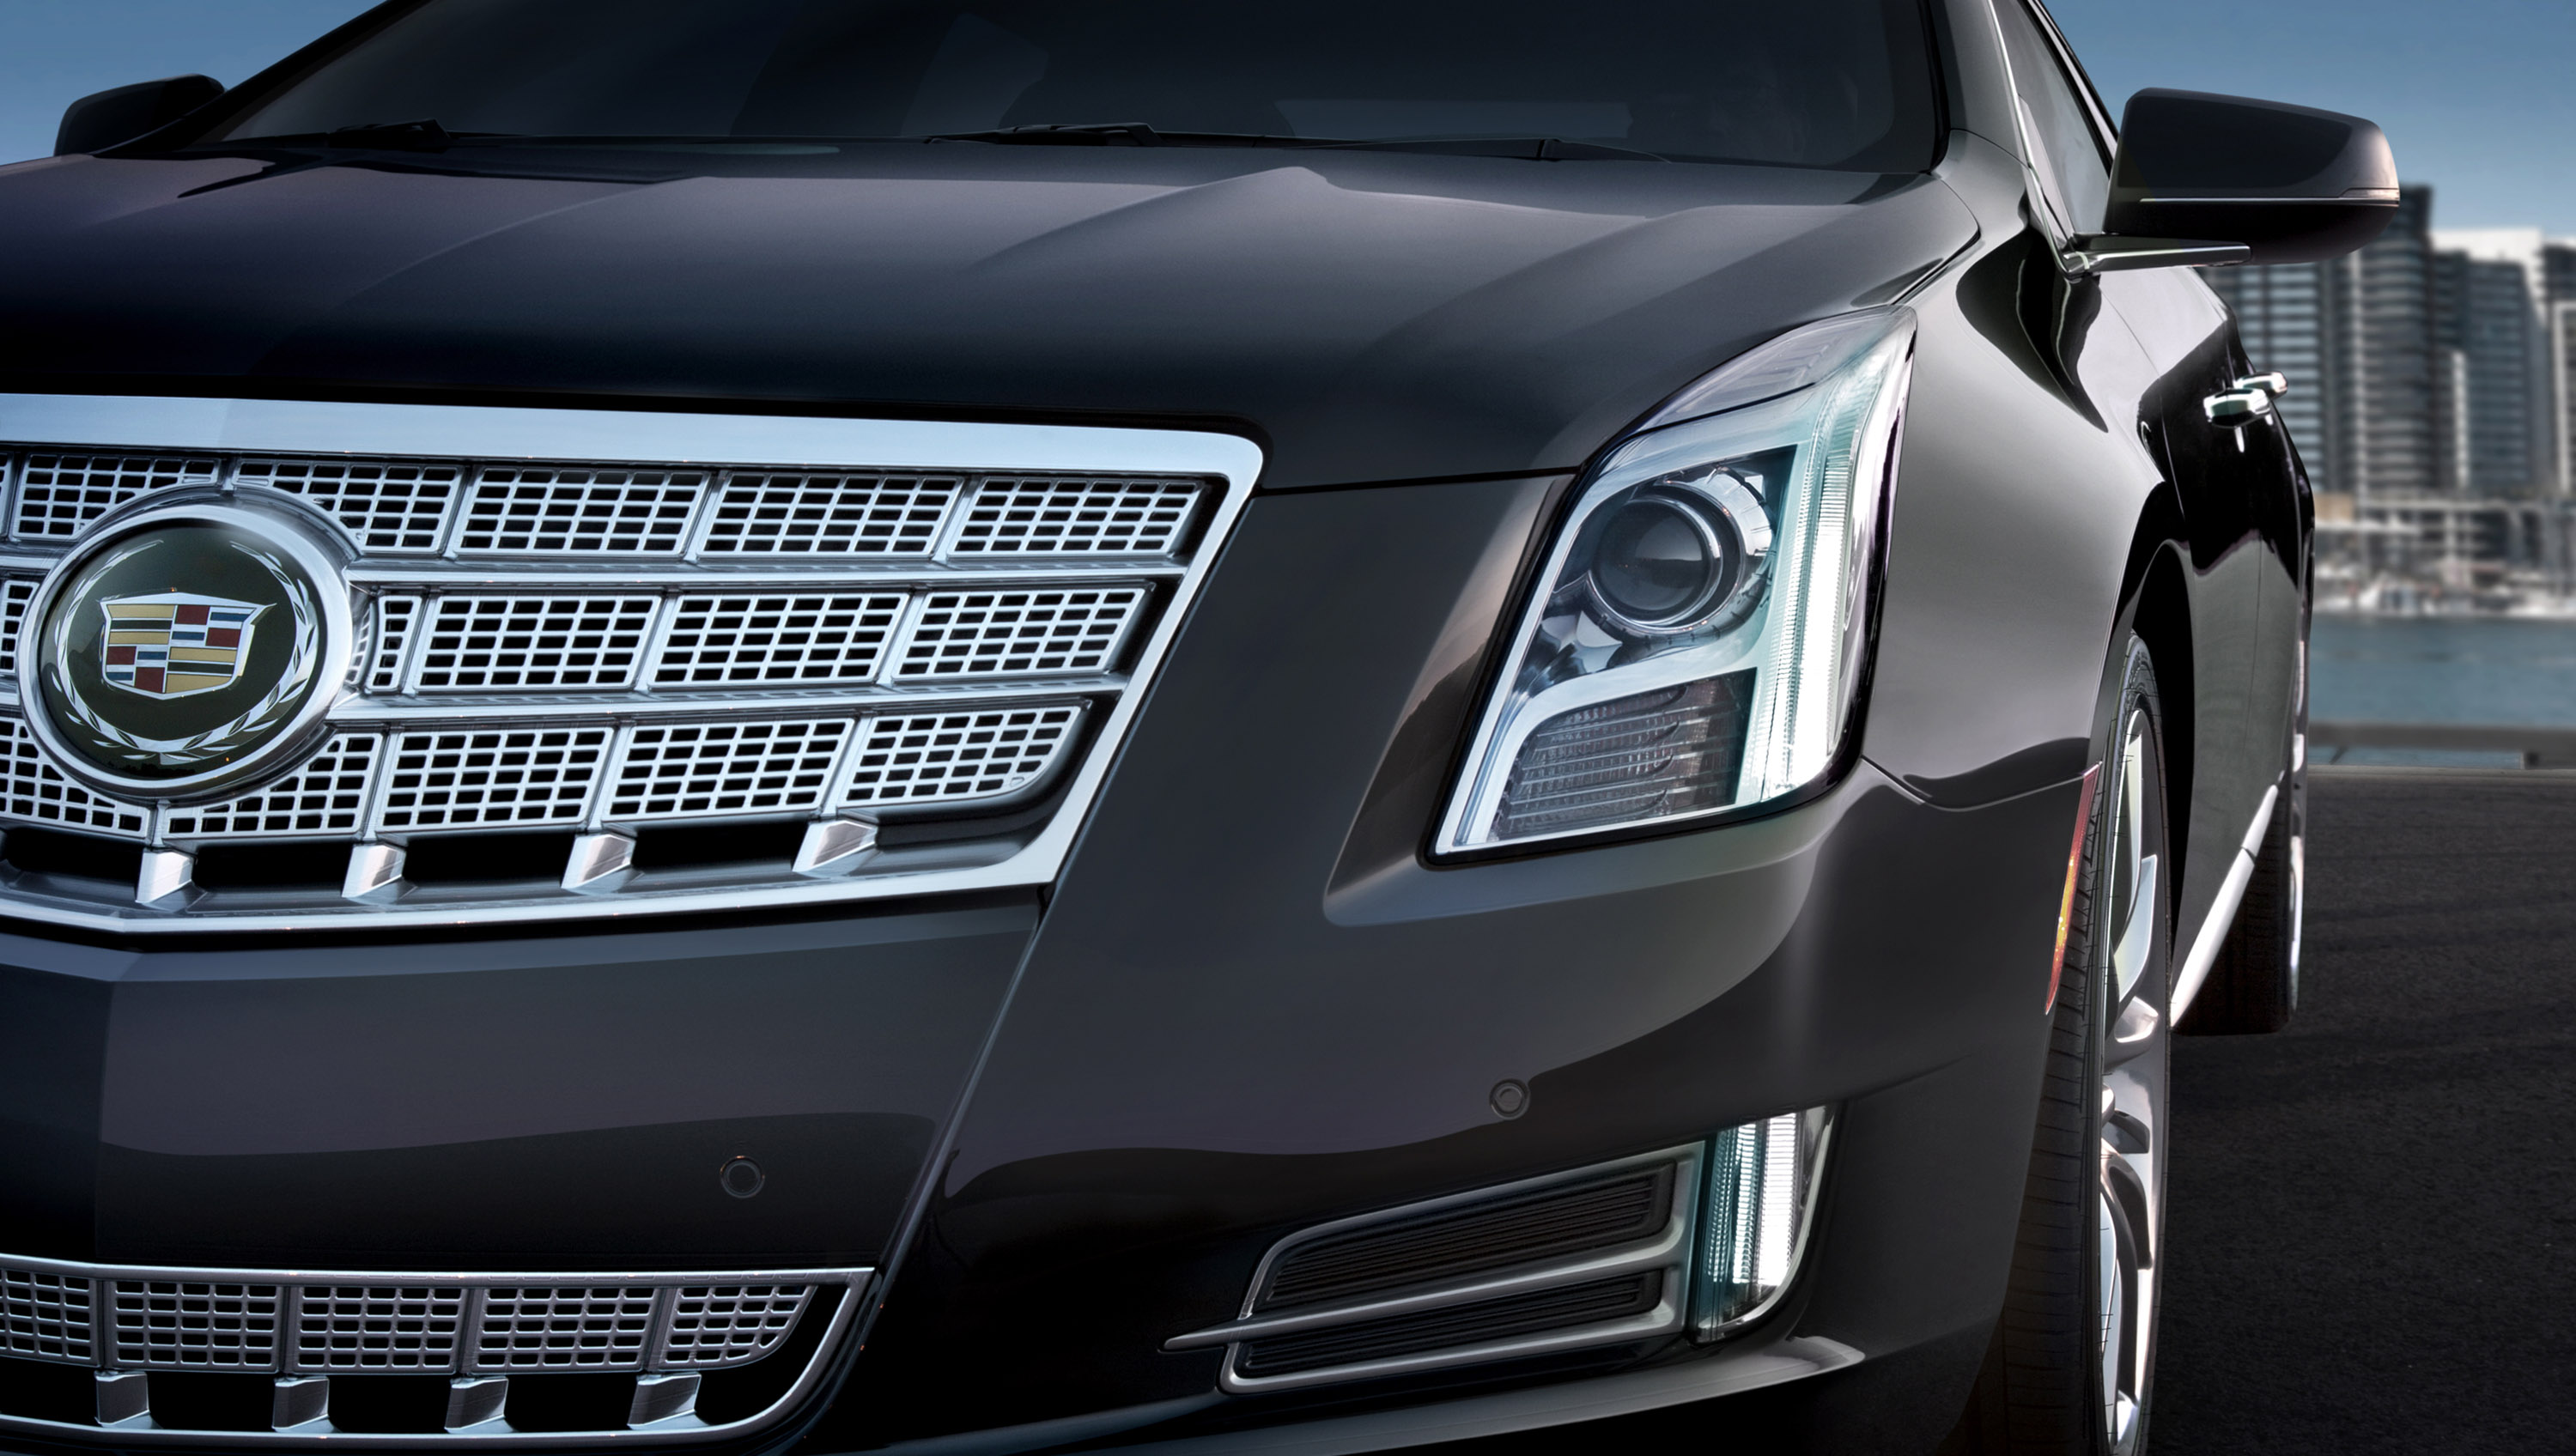 2013 cadillac xts luxury sedan pricing announced. Black Bedroom Furniture Sets. Home Design Ideas